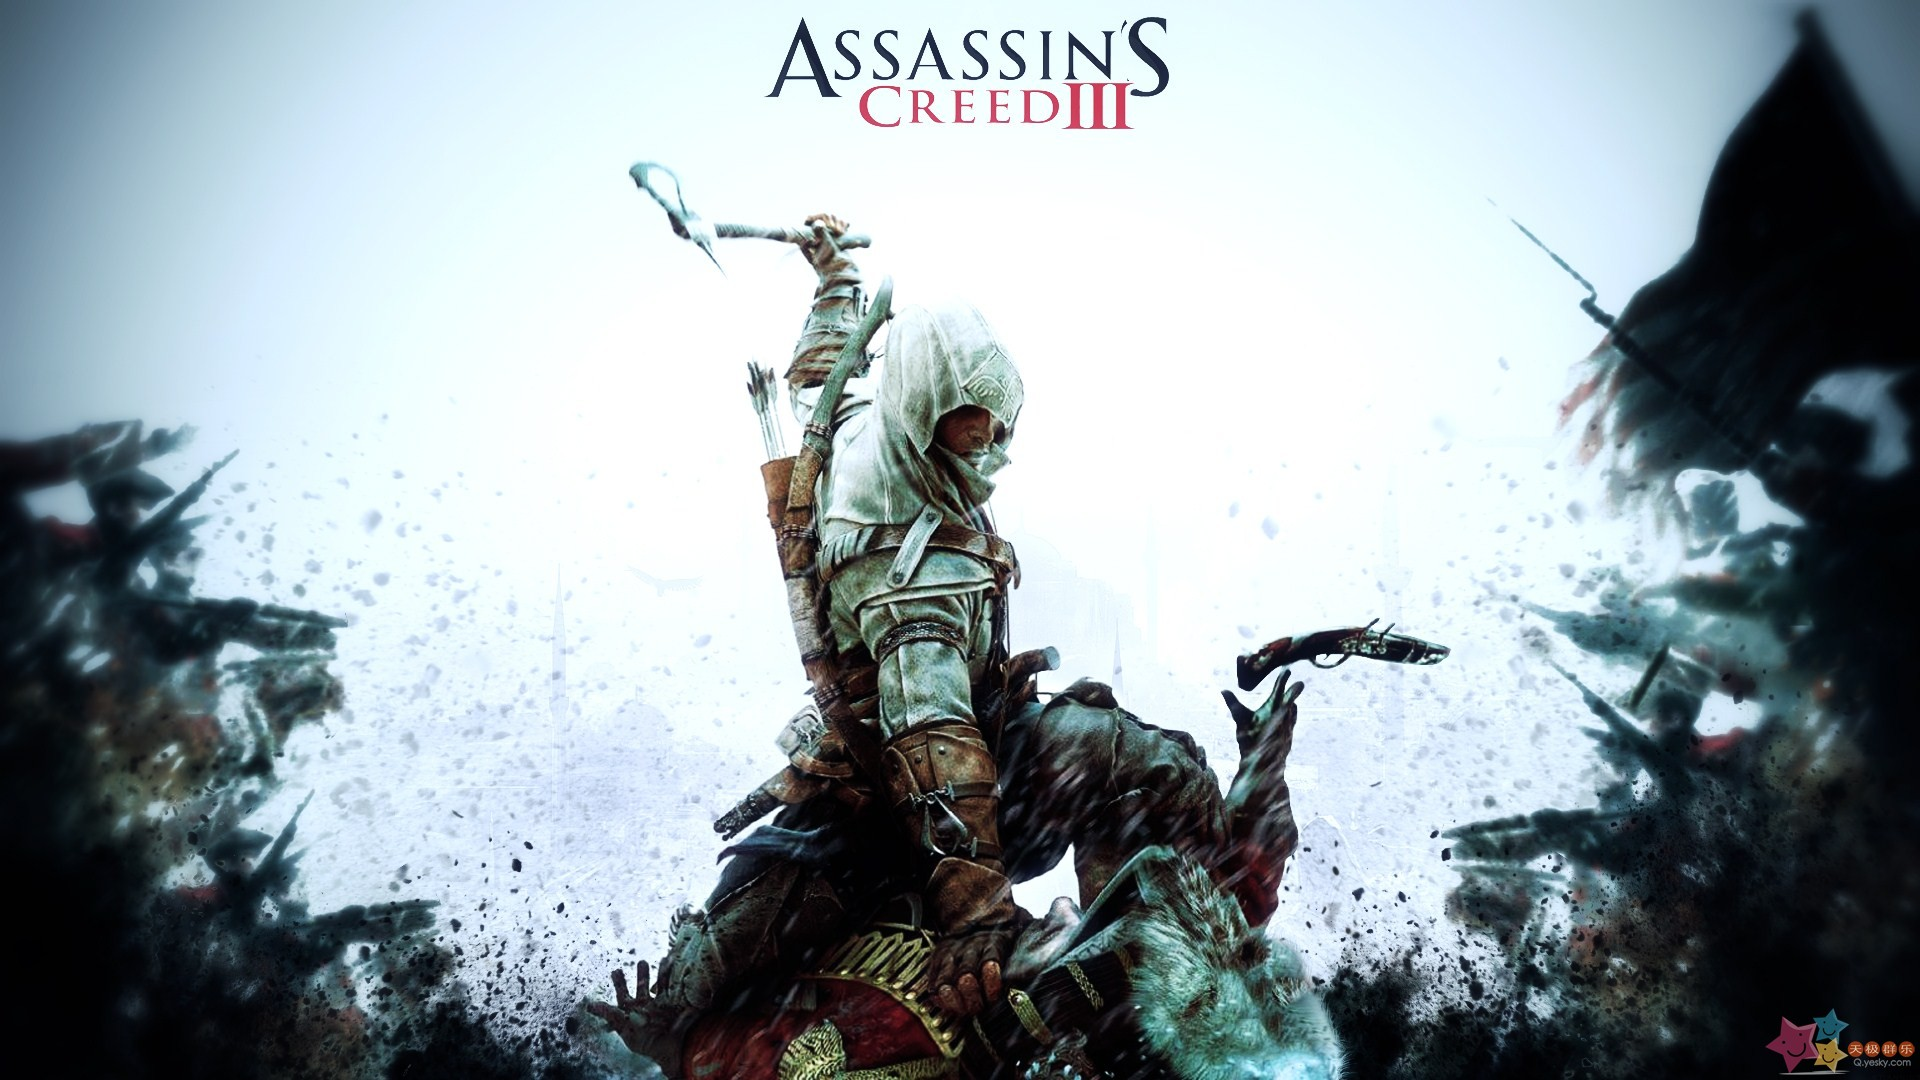 Video Game - Assassin's Creed III  - Assassin - Game - Cgi Wallpaper